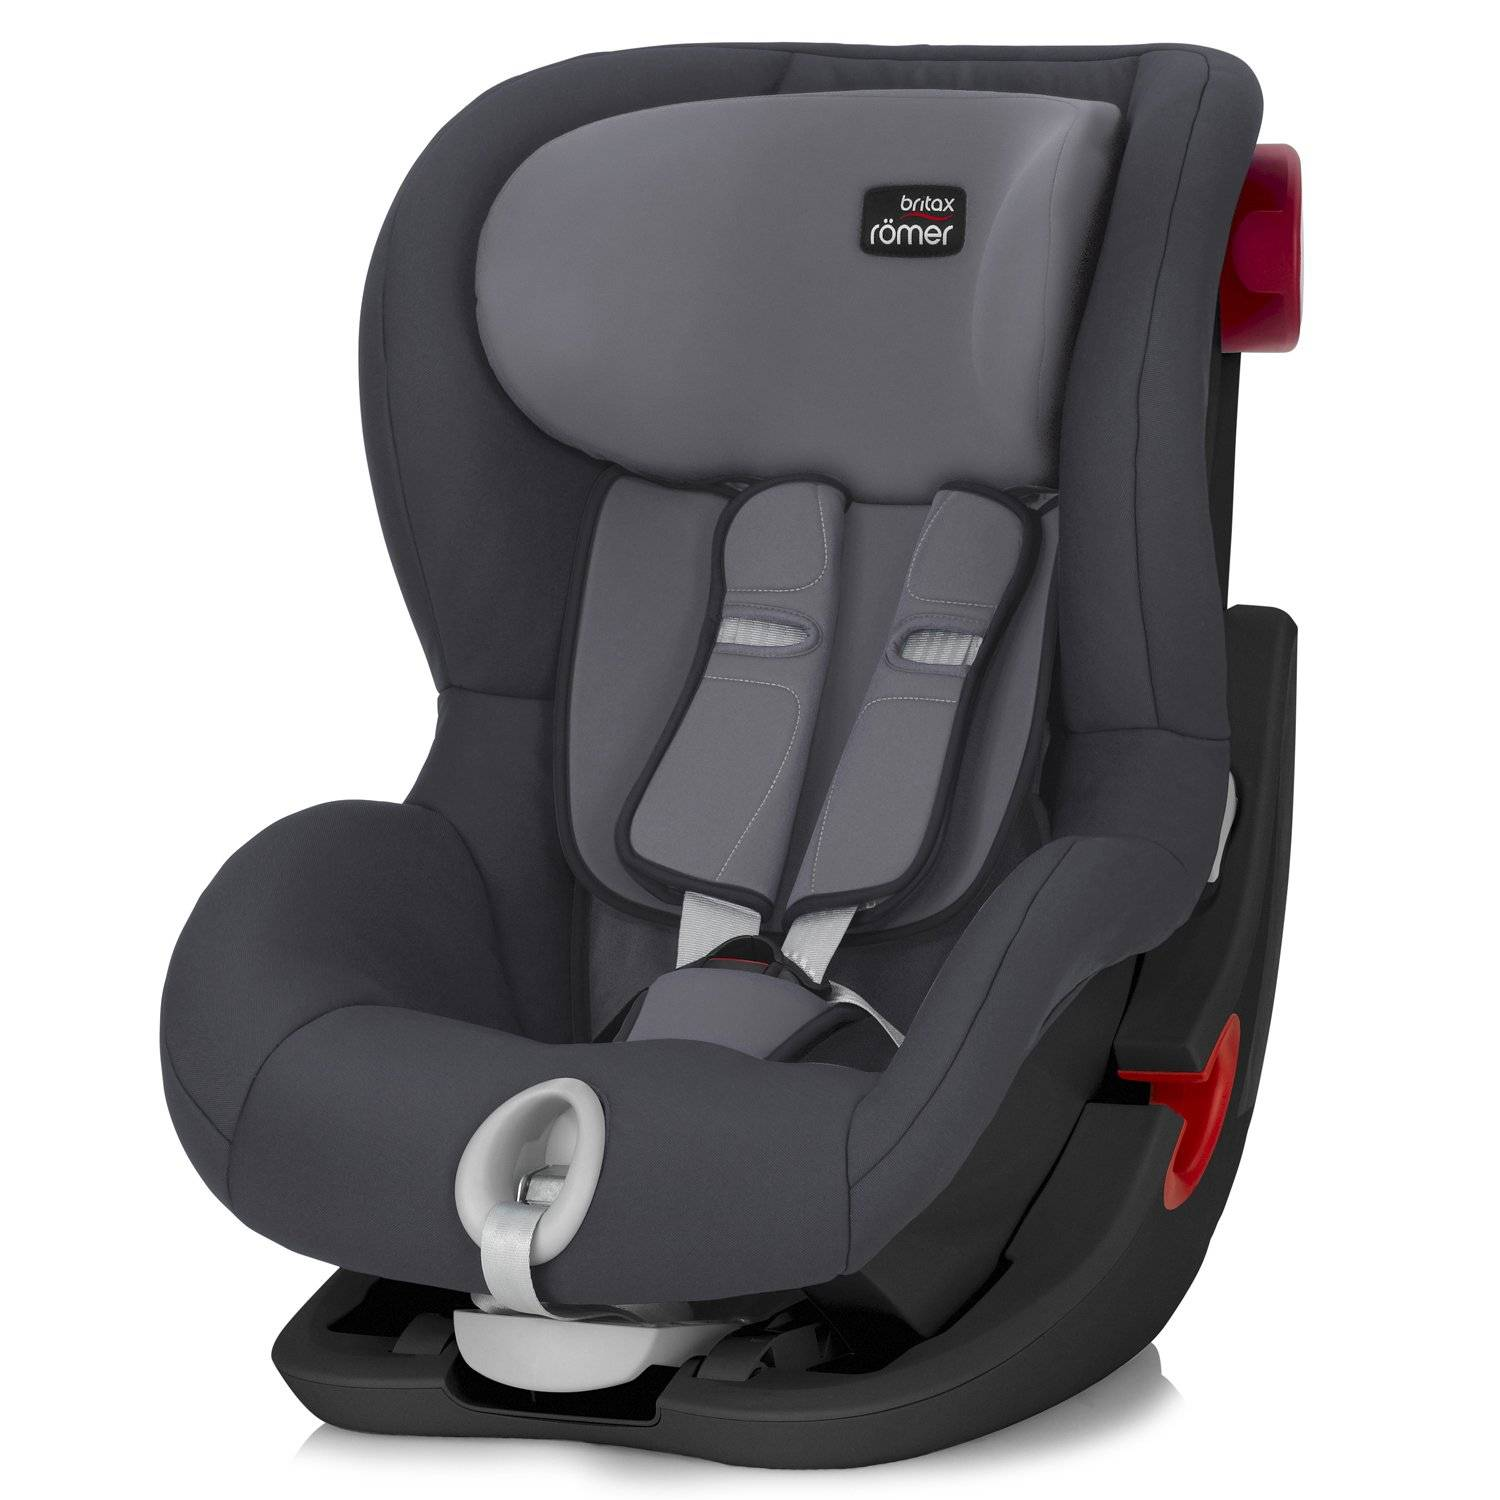 Britax Roemer Автокресло King II Black Series Storm Grey Trendline, серый